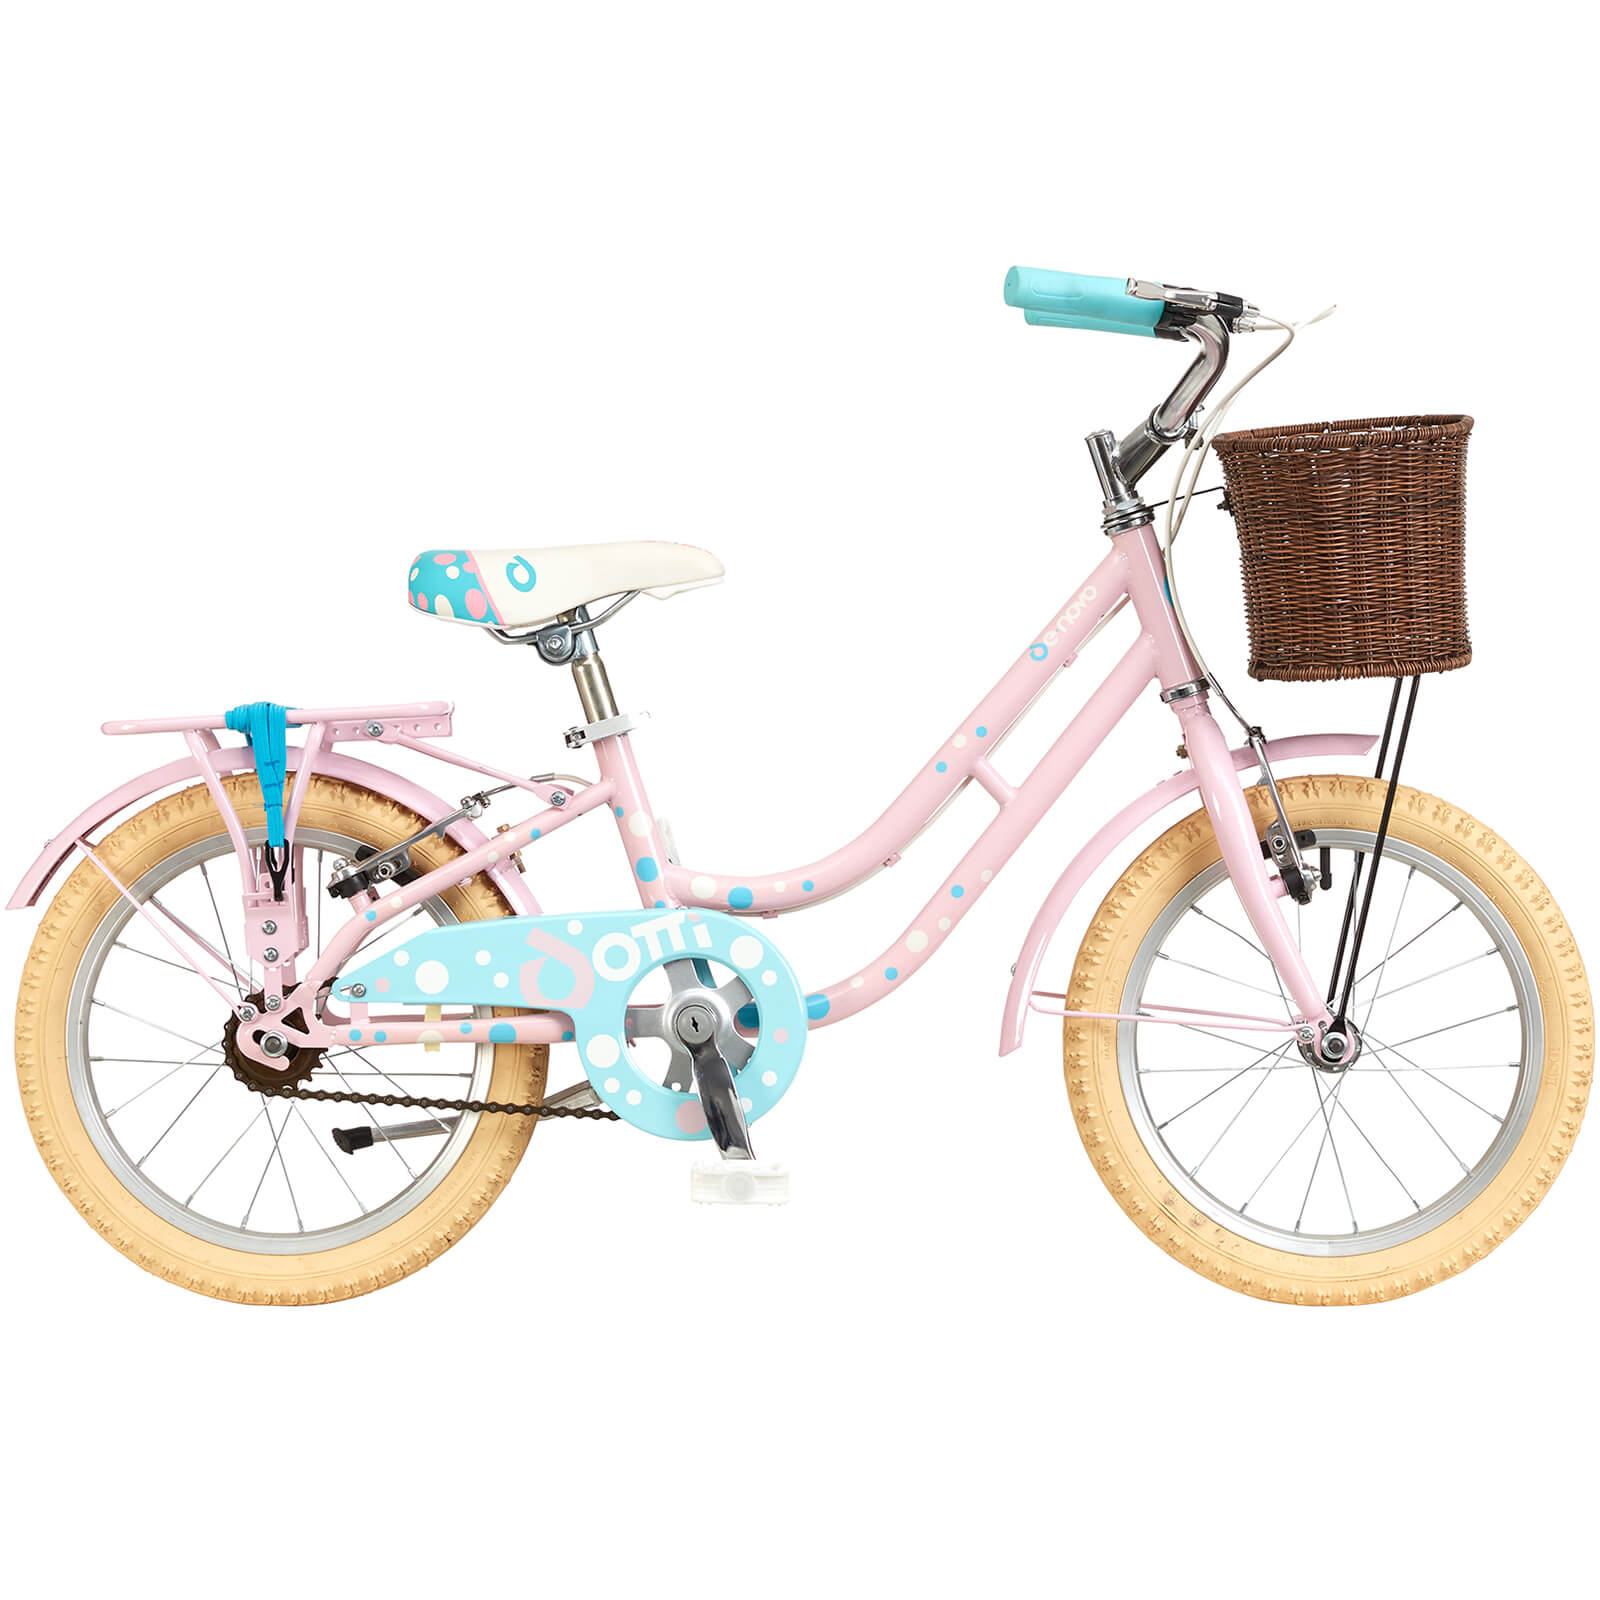 "Denovo Dotti Heritage Girls Bike - 16"" Wheel"